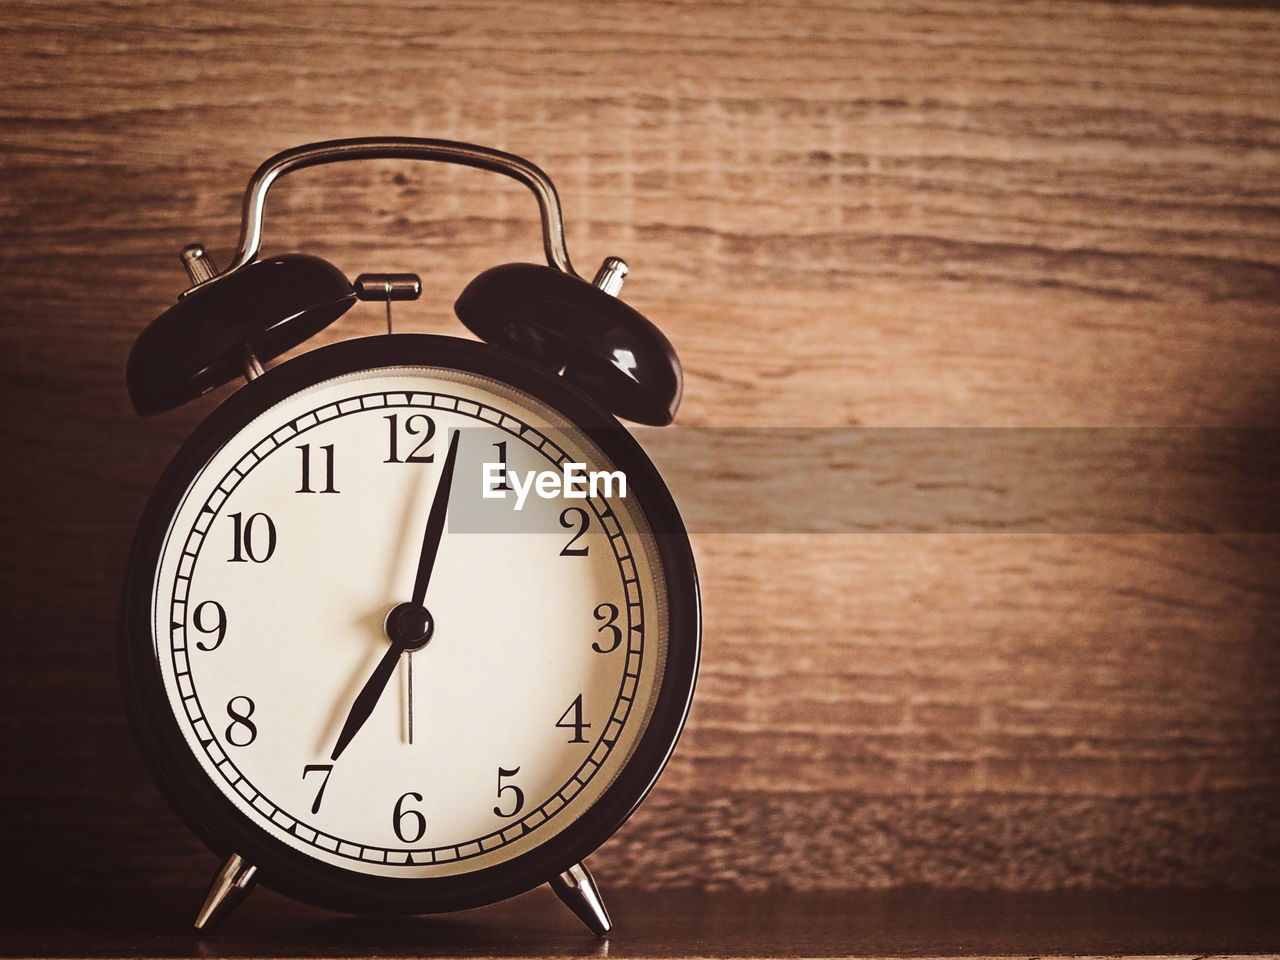 time, clock, alarm clock, number, table, indoors, no people, close-up, minute hand, accuracy, wood - material, focus on foreground, still life, clock face, shape, single object, clock hand, retro styled, deadline, wood grain, personal accessory